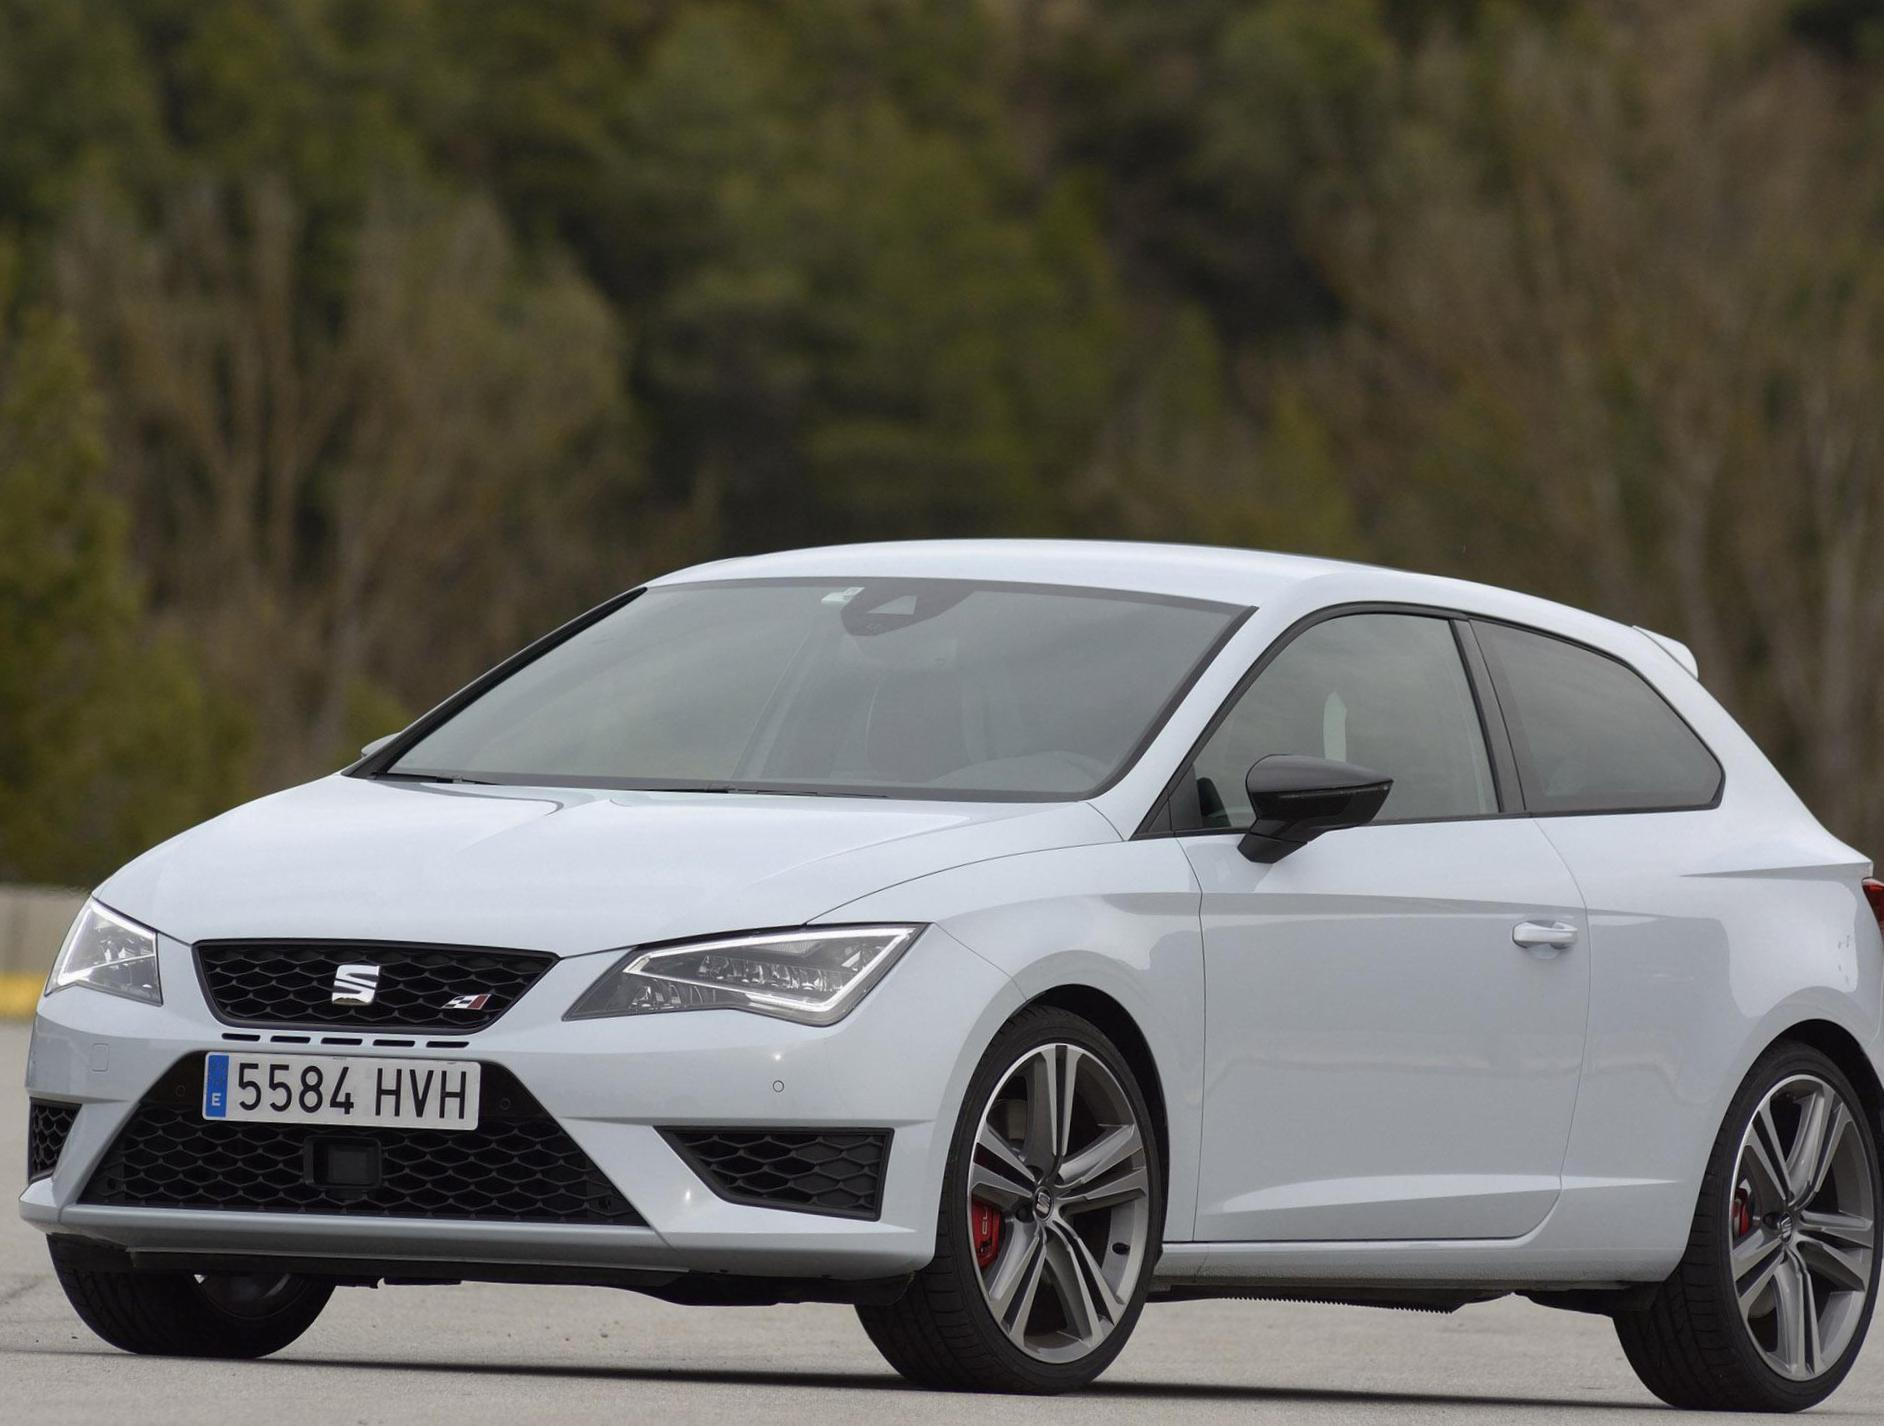 Seat Leon SC Cupra Specification 2011